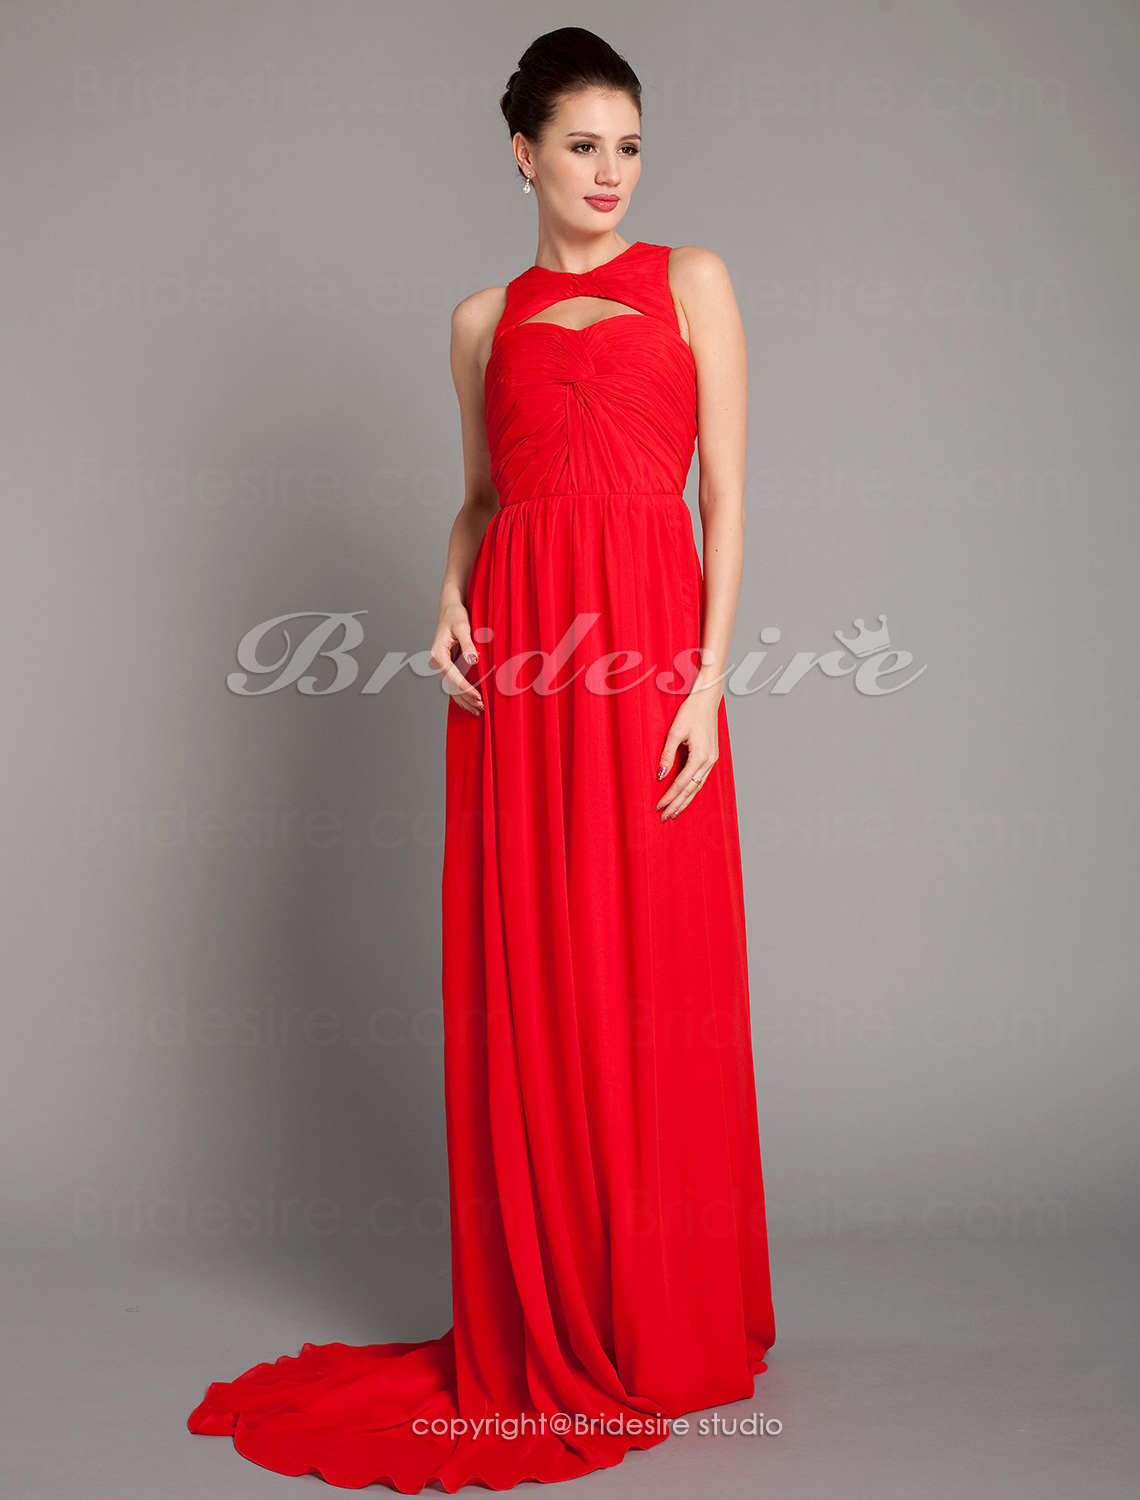 Sheath/ Column Chiffon Floor-length V-neck Evening Dress inspired by Odette Yustman at Oscar